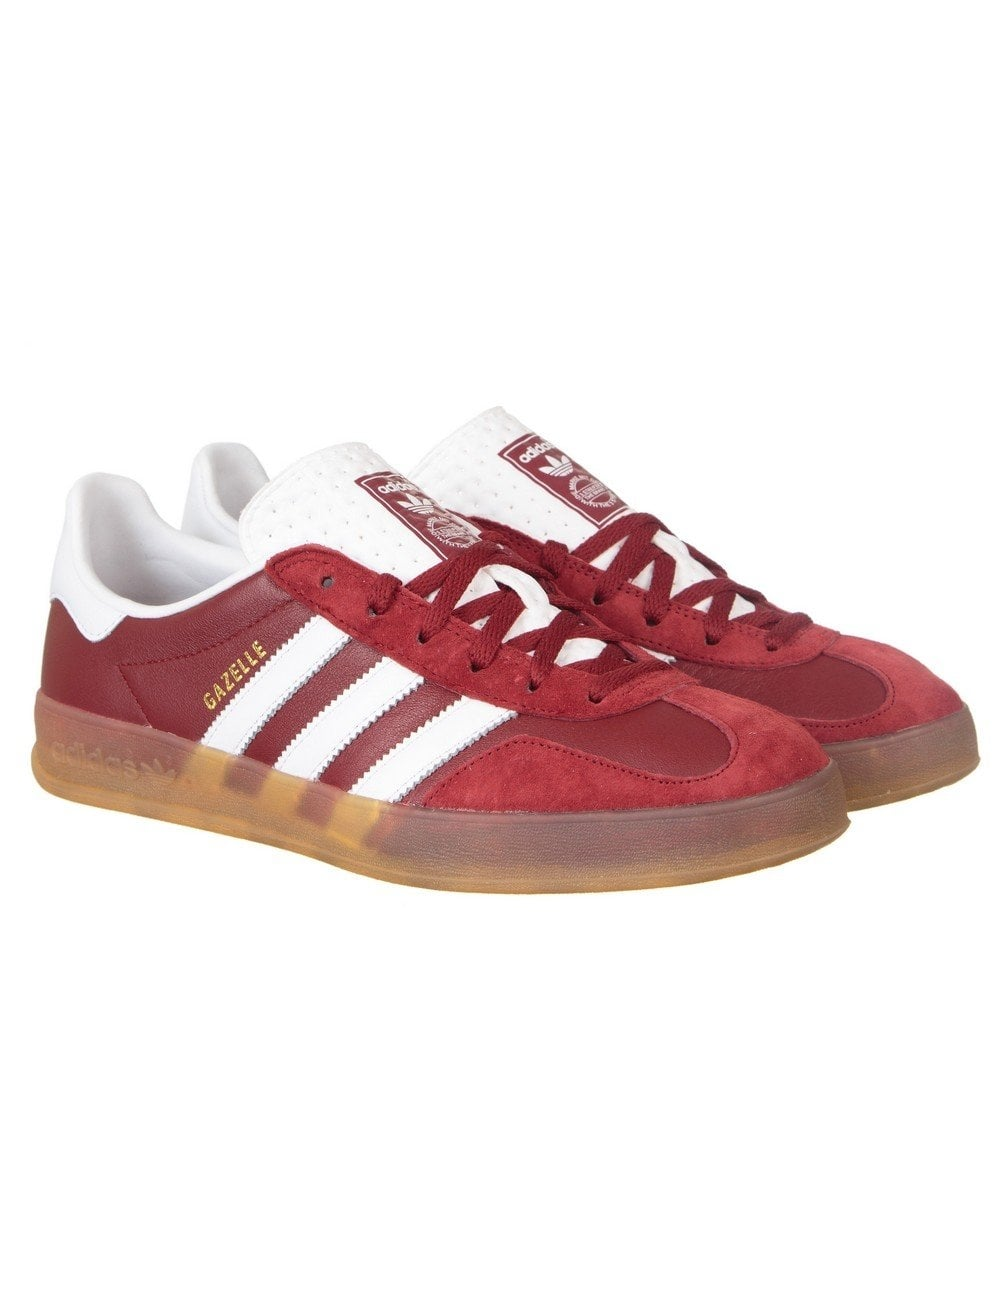 Adidas Originals Gazelle Indoor Shoes - Rust Red - Footwear from Fat ... d2fa1cb5c3d5